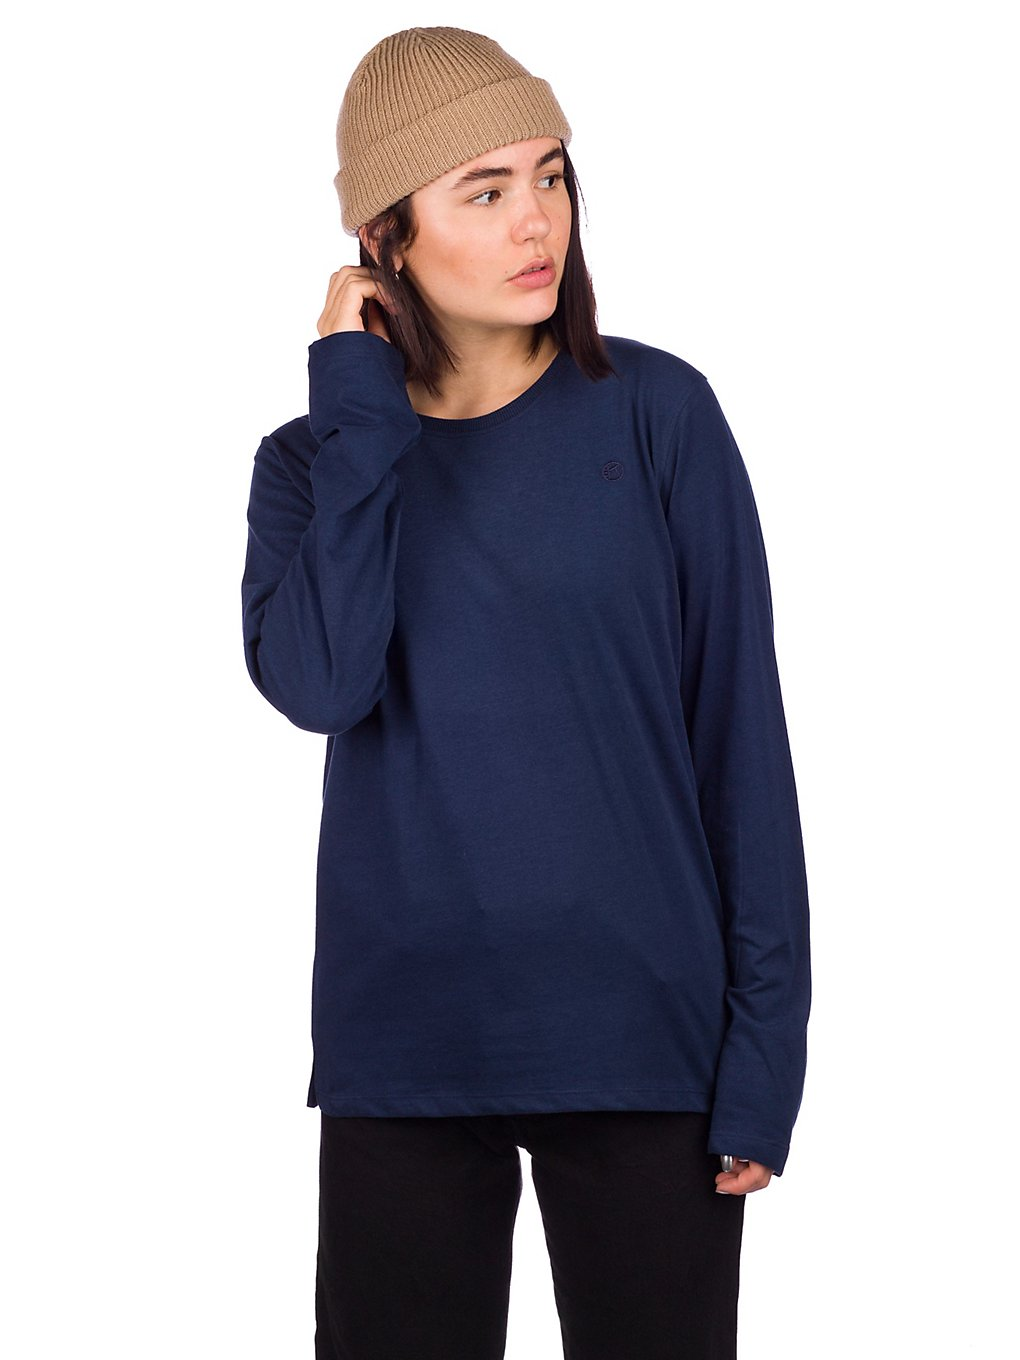 Kazane Tove Long Sleeve T-Shirt dress blue